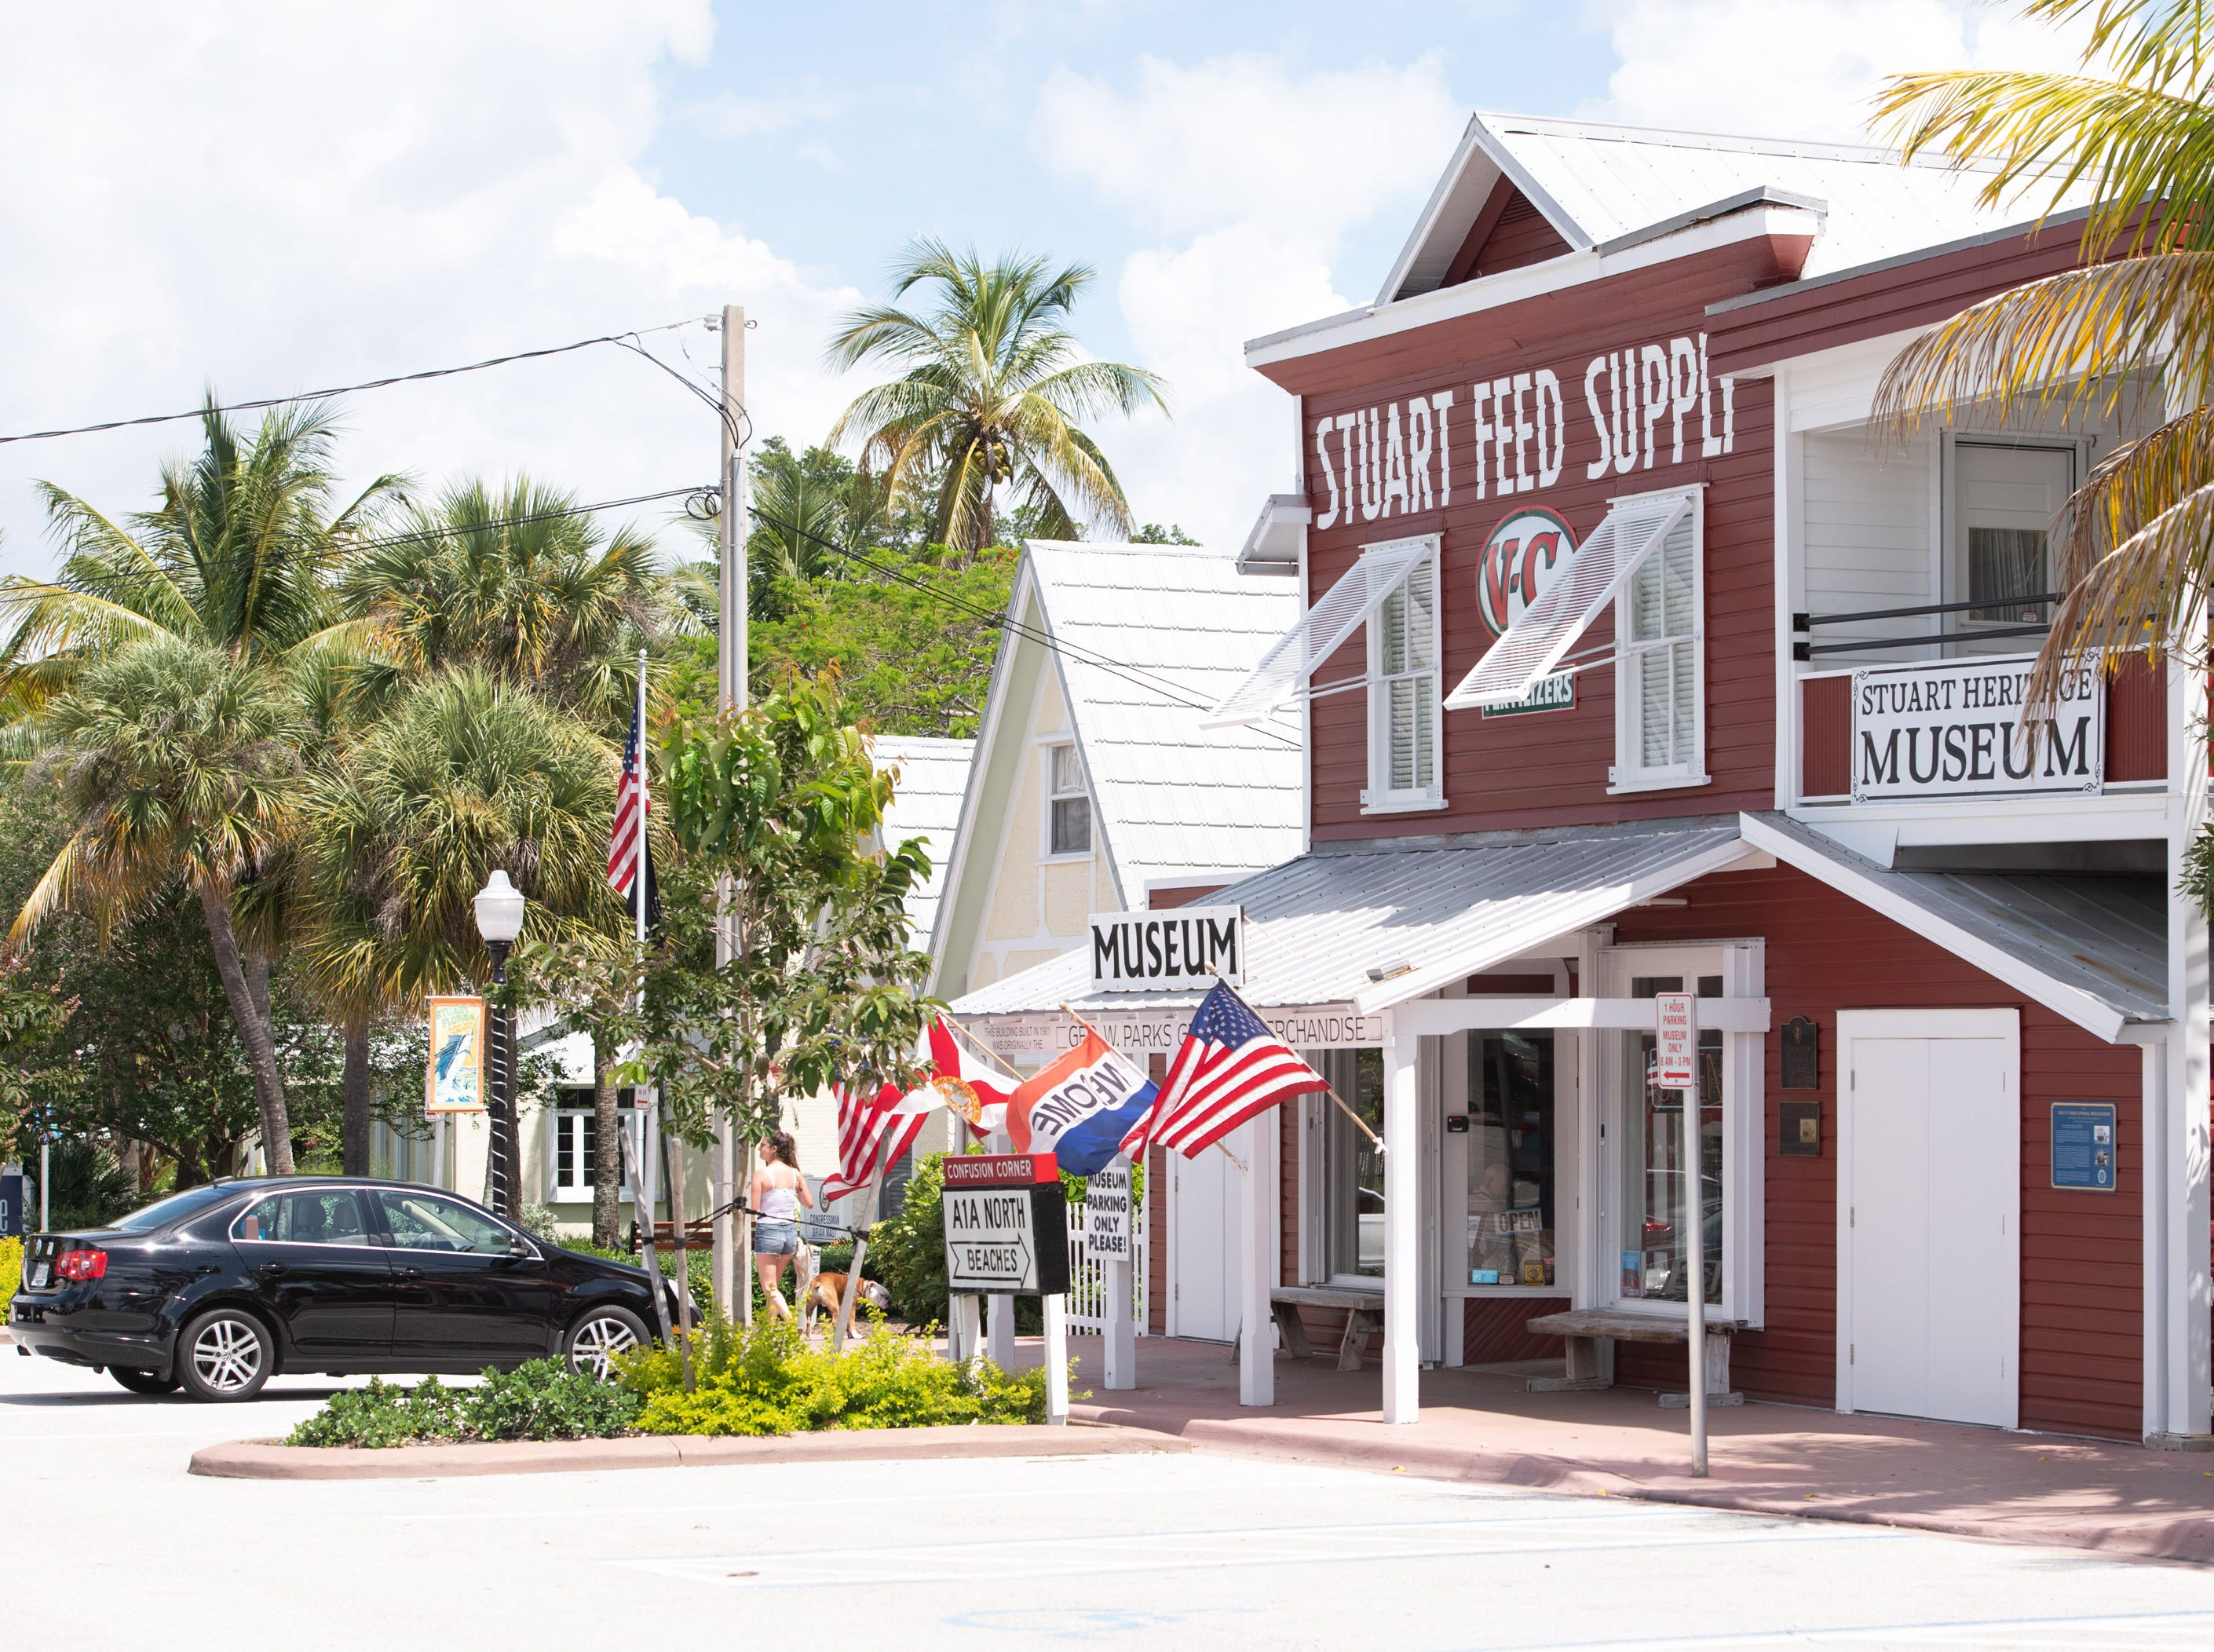 Stuart Heritage Museum Day is held at the Stuart Heritage Museum on Saturday, May 11, 2019, in Stuart.